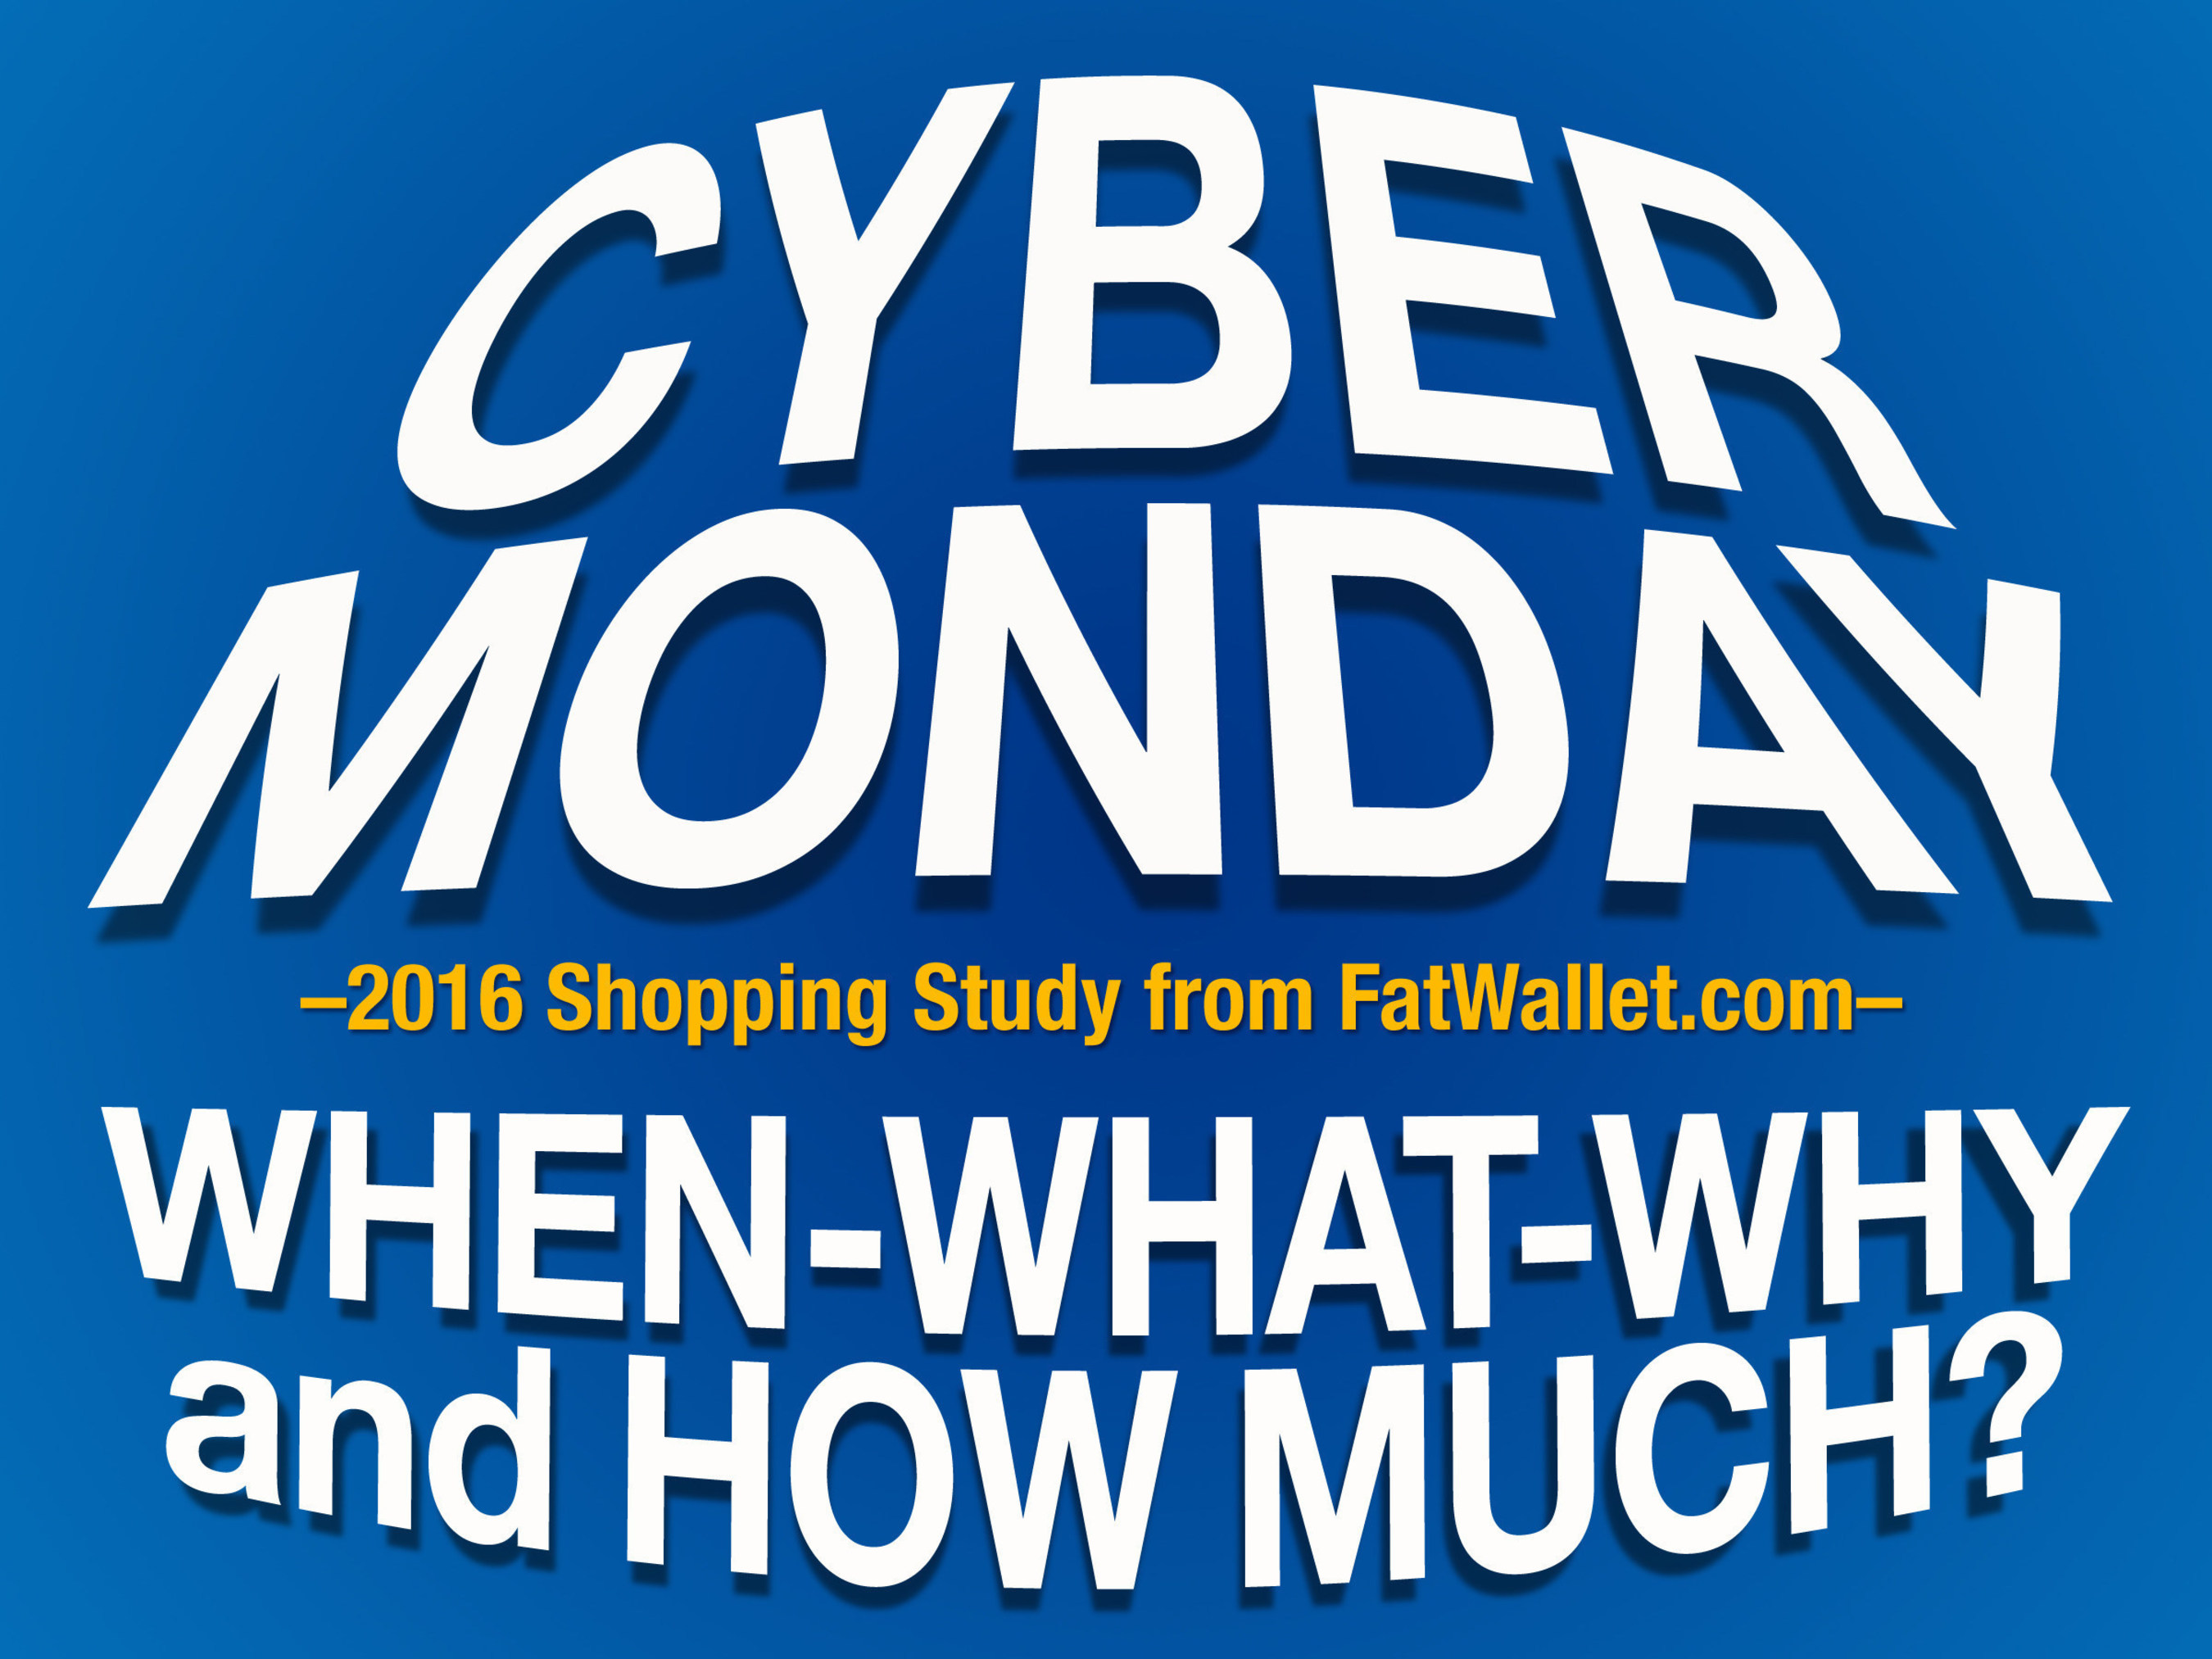 2016 Cyber Monday Shopping Survey - 8 in 10 wait to shop for Cyber Monday Deals on Monday morning. FatWallet.com